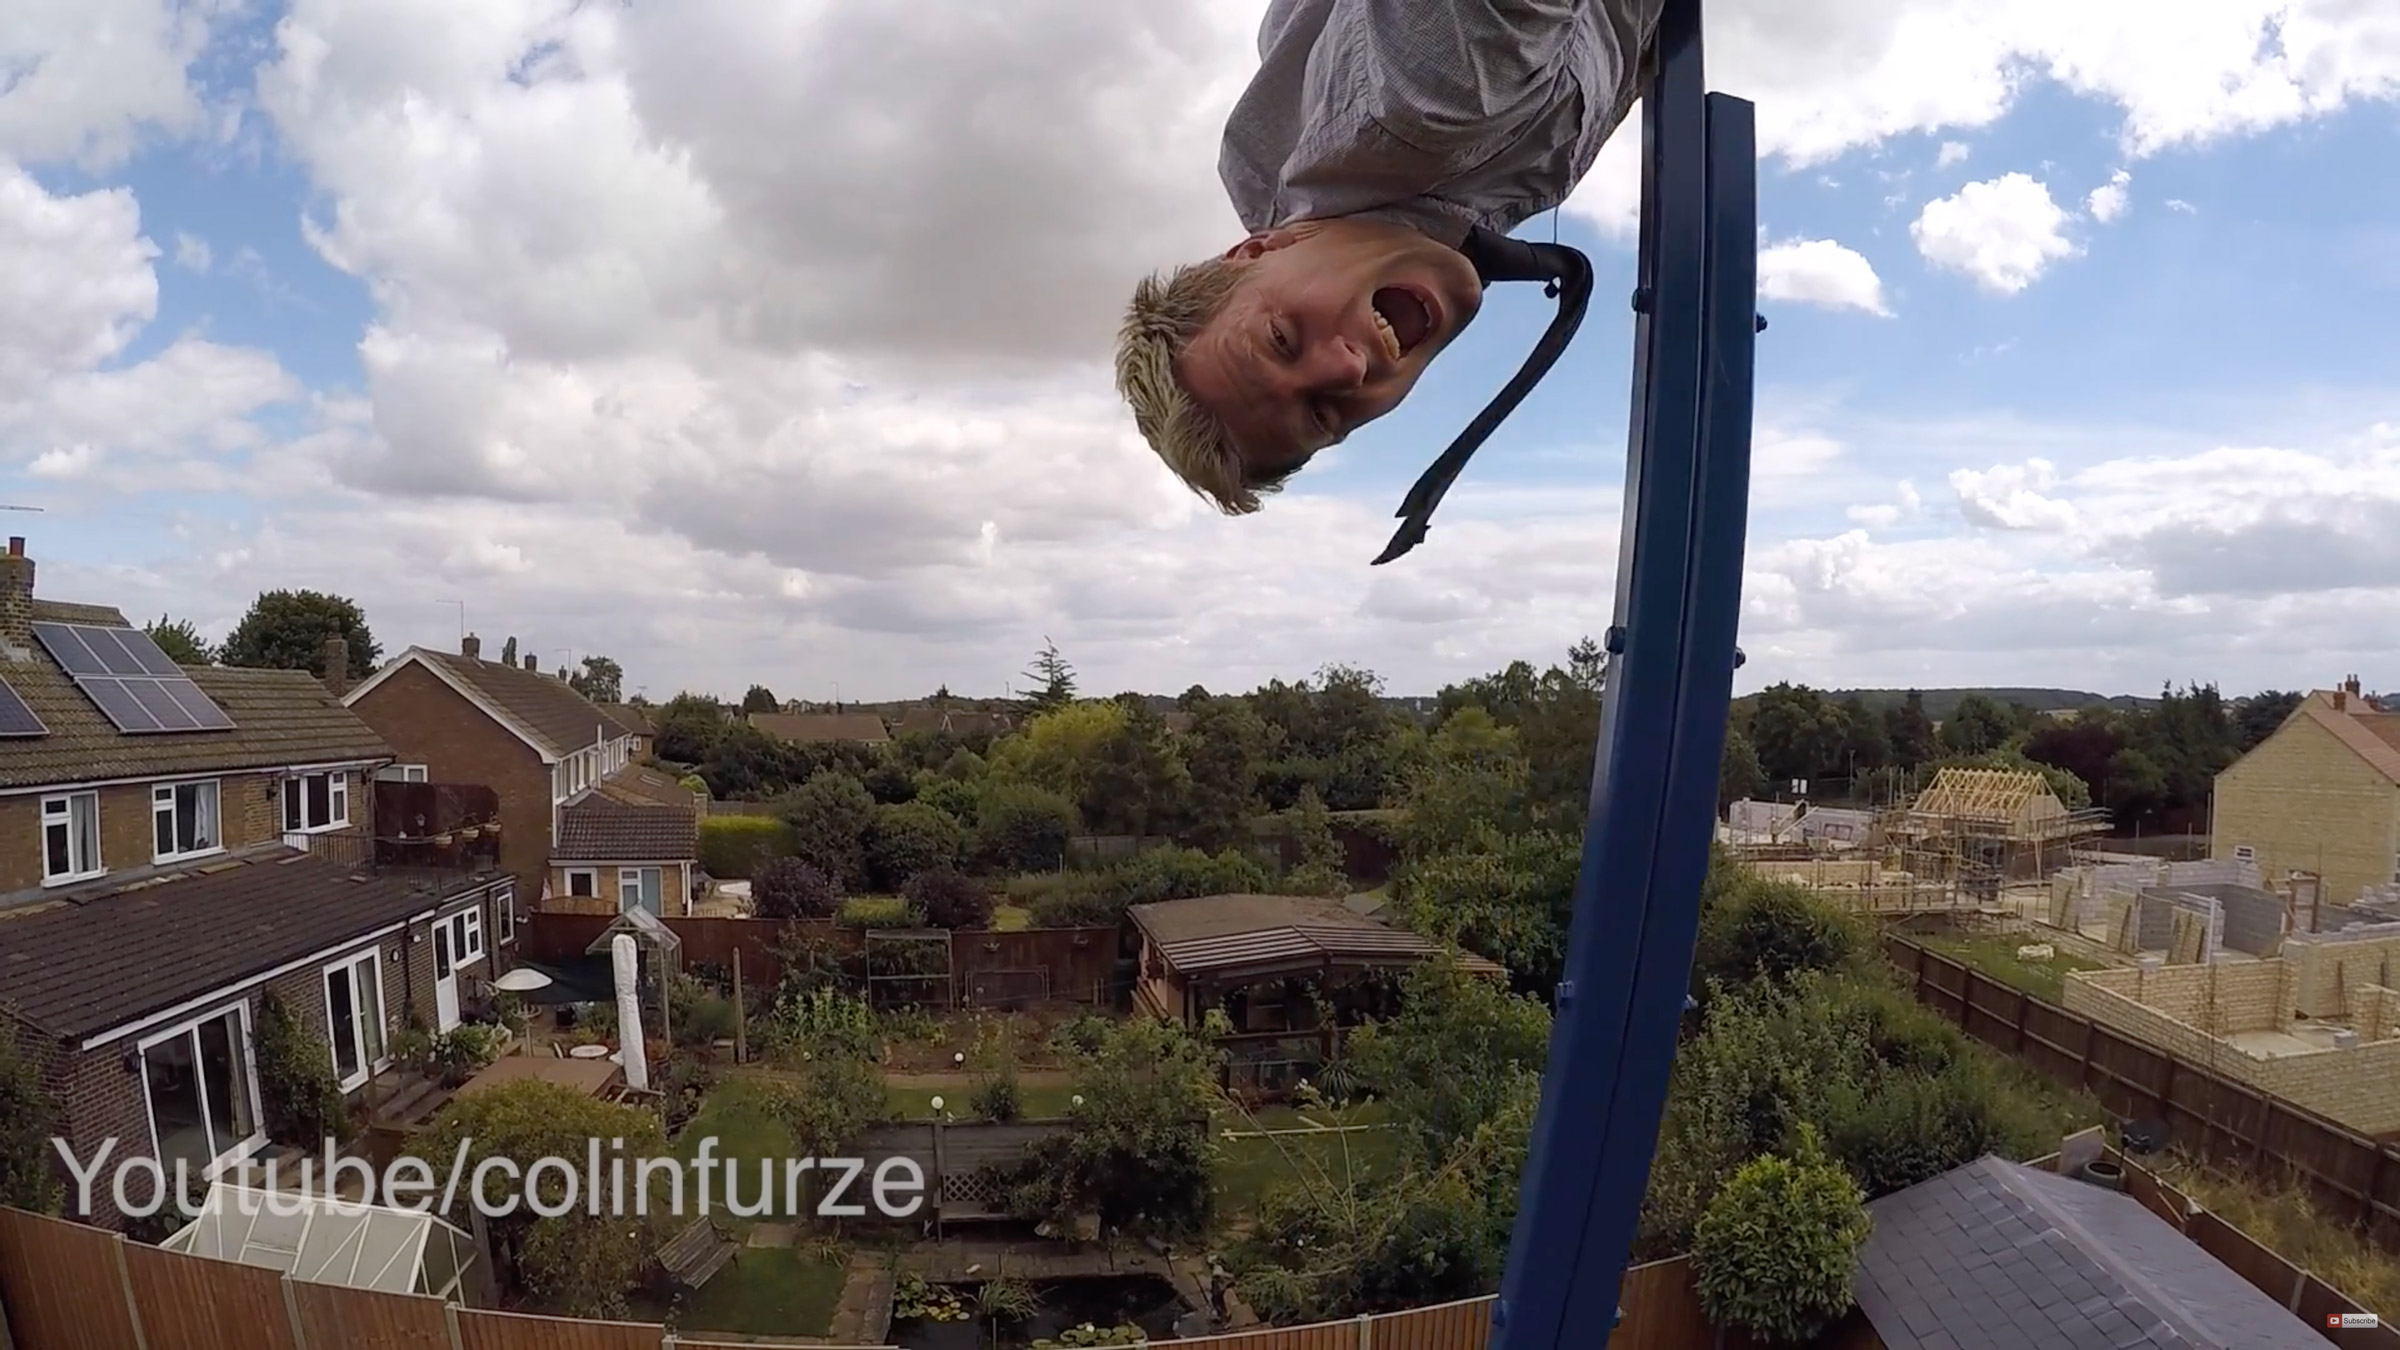 Colinfurze upside down on his 360-degree swing.